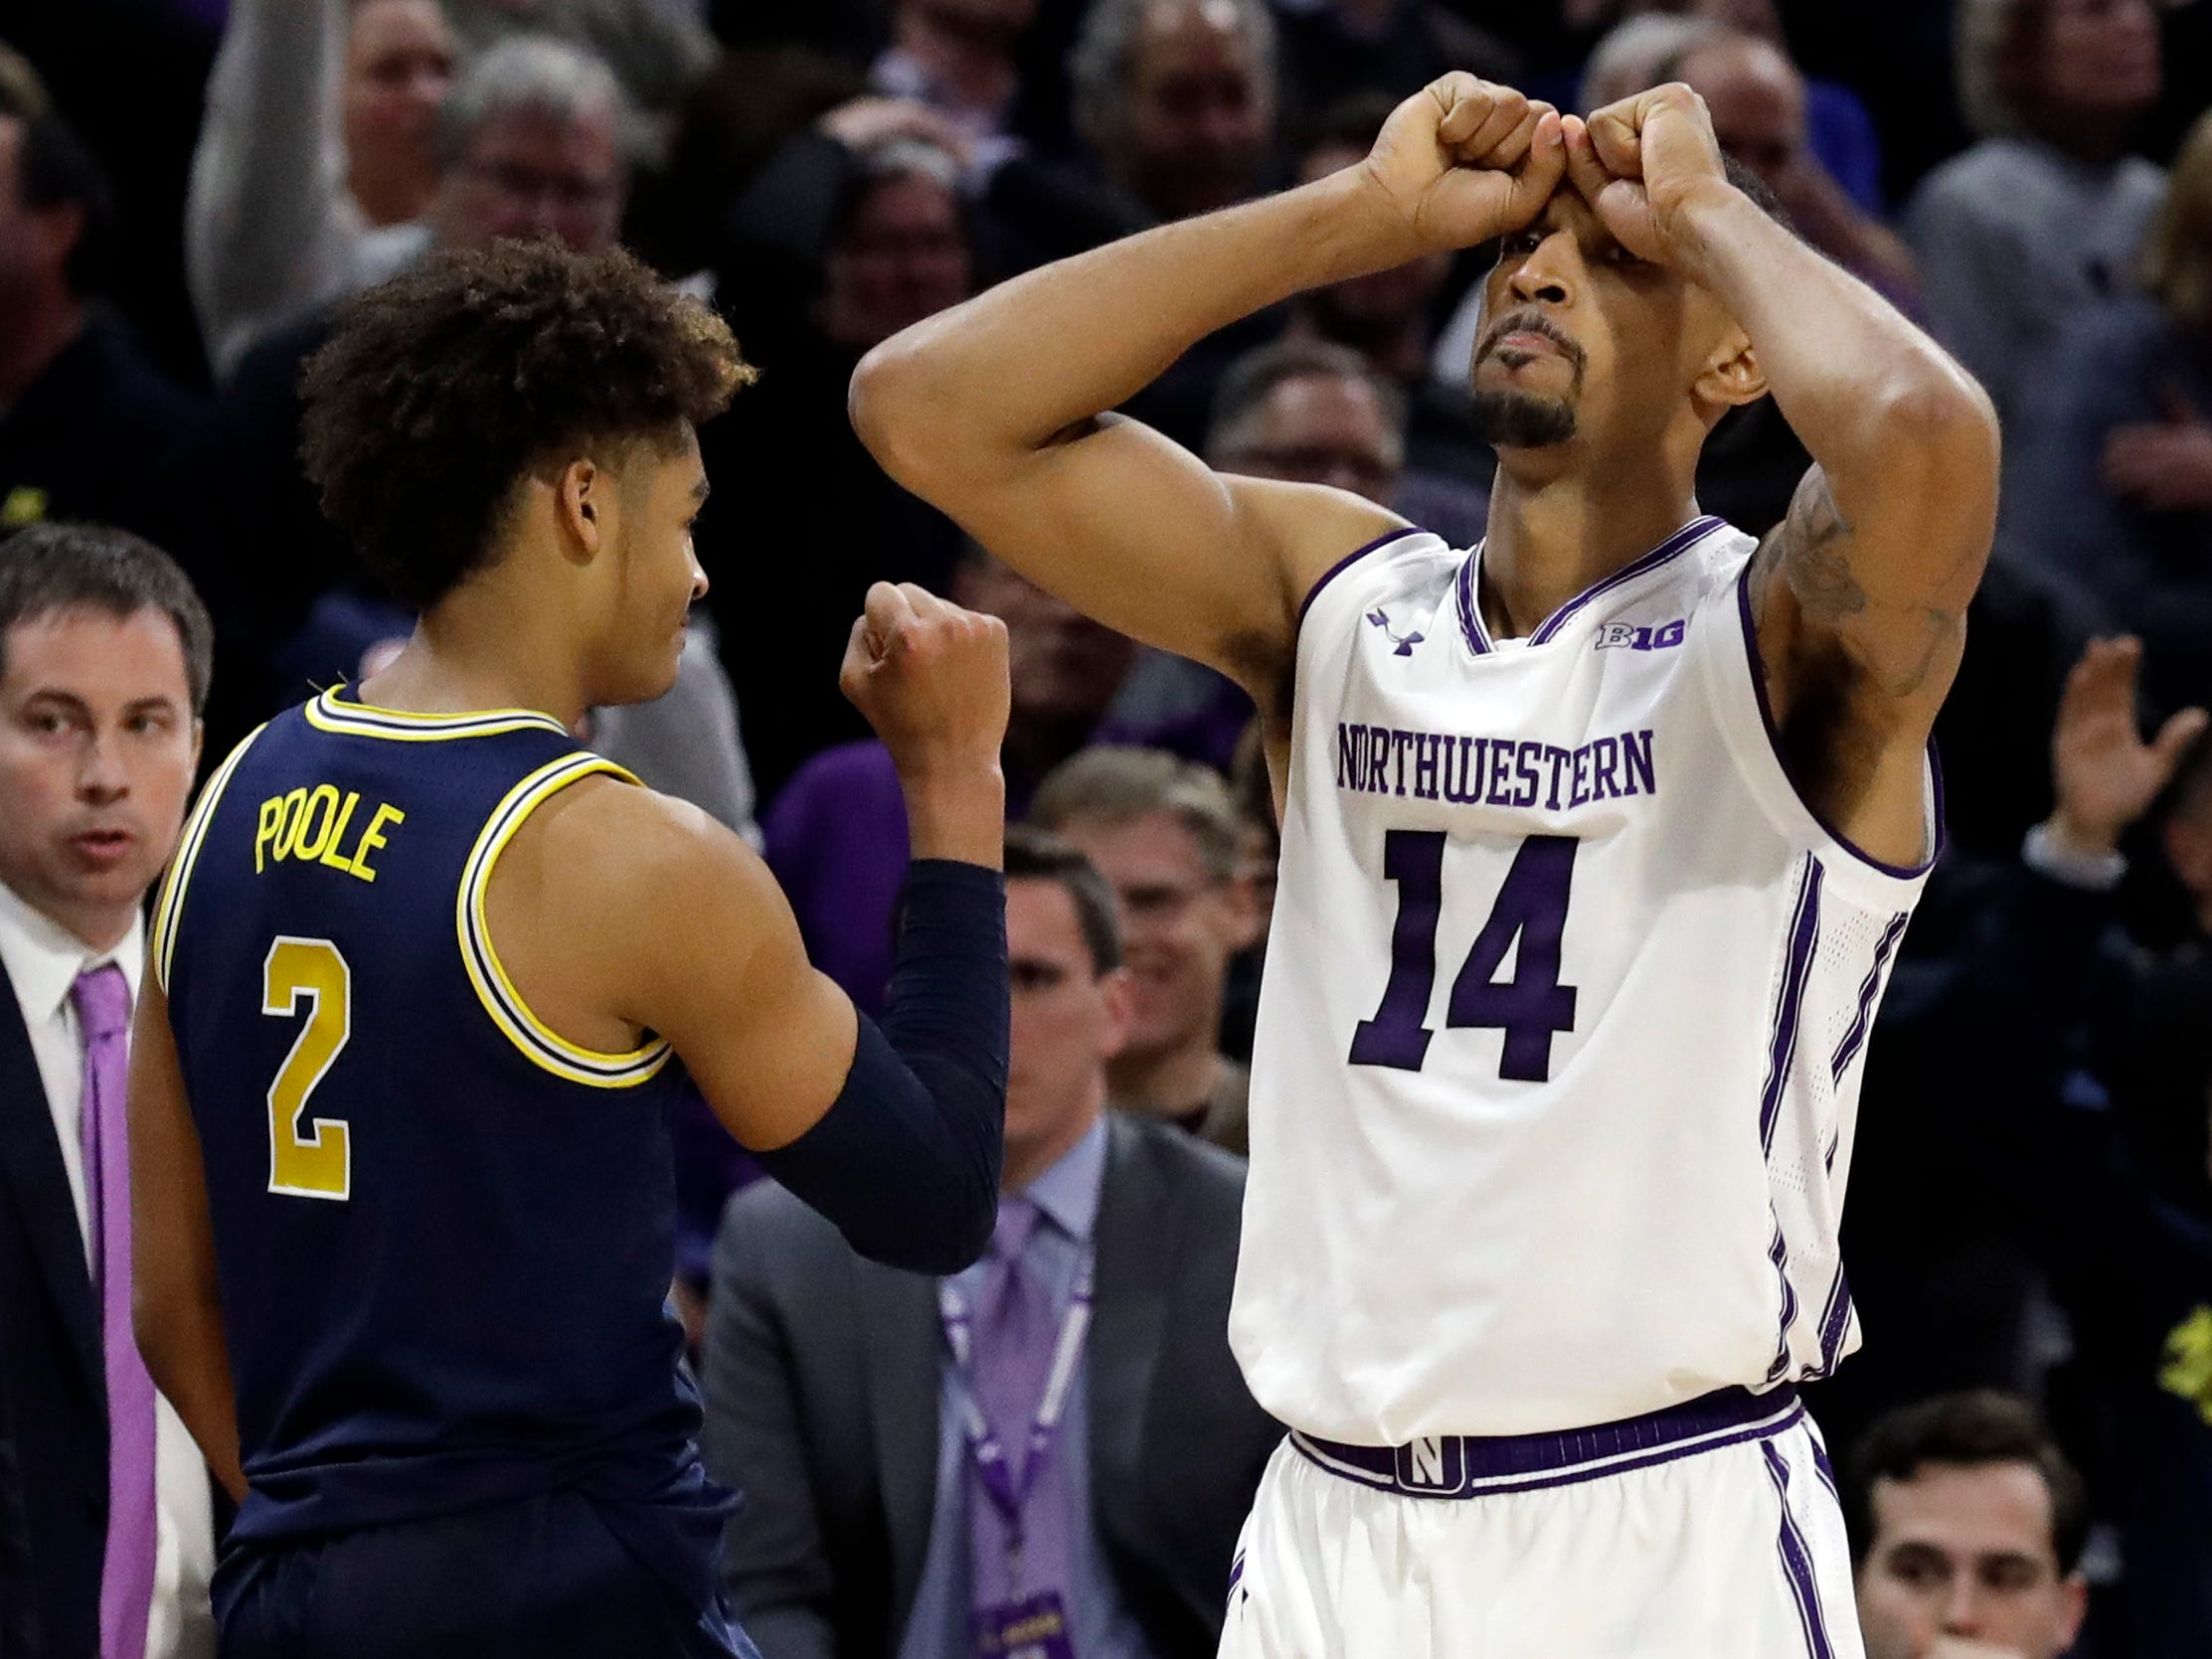 Northwestern guard Ryan Taylor reacts after missing a shot as Michigan guard Jordan Poole celebrates the 62-60 win Tuesday, Dec. 4, 2018, in Evanston, Ill.